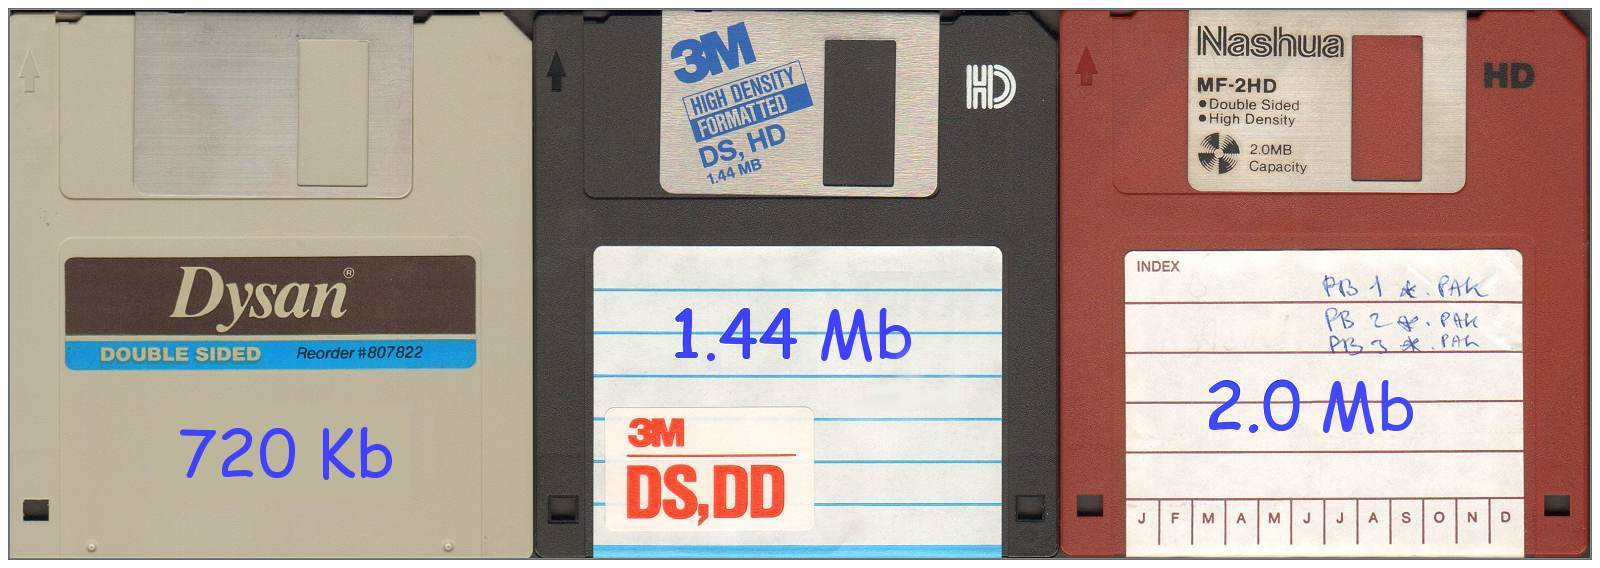 3½-inch Floppy disks - 720Kb - 1.44Mb - 2.0Mb capacity